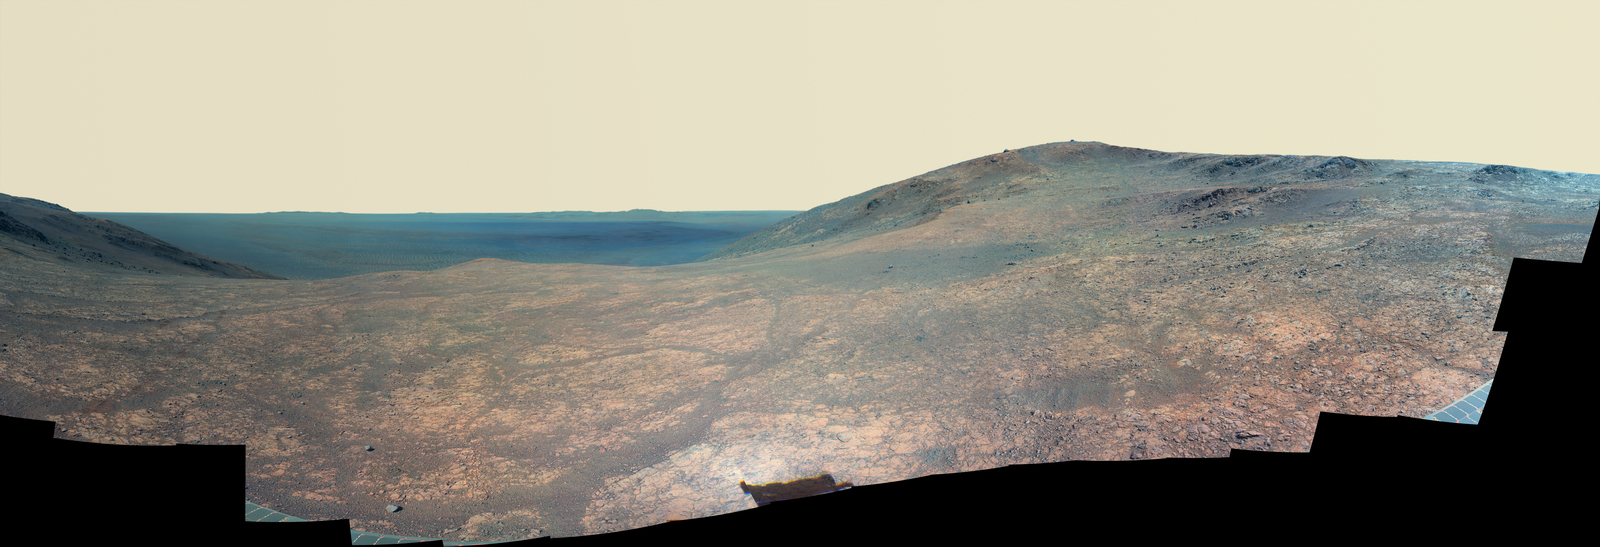 """Marathon Valley"" on Mars opens to a view across Endeavour Crater in this enhanced-color version of a scene from the Pancam of NASA's Mars Exploration Rover Opportunity. The scene merges many exposures taken during April and May 2016. The foreground shows the fractured texture of the valley."